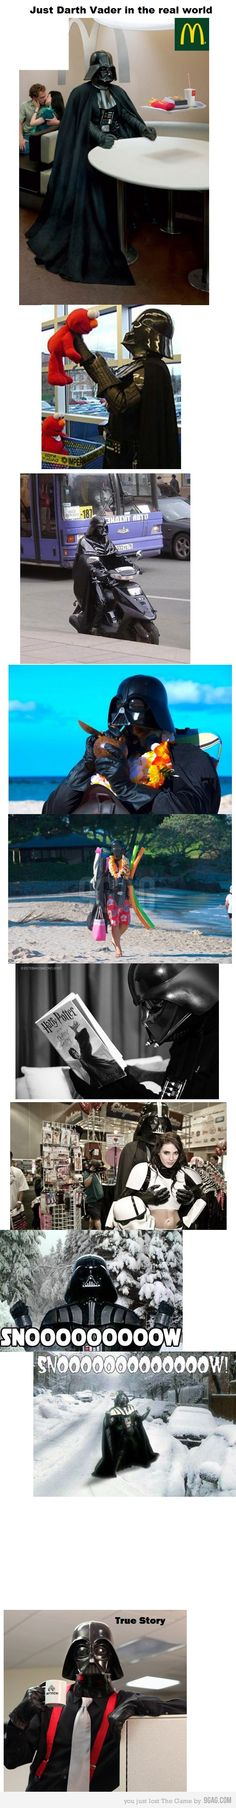 Darth Vader in the real world, LOL! @Anya Coleman lookie.